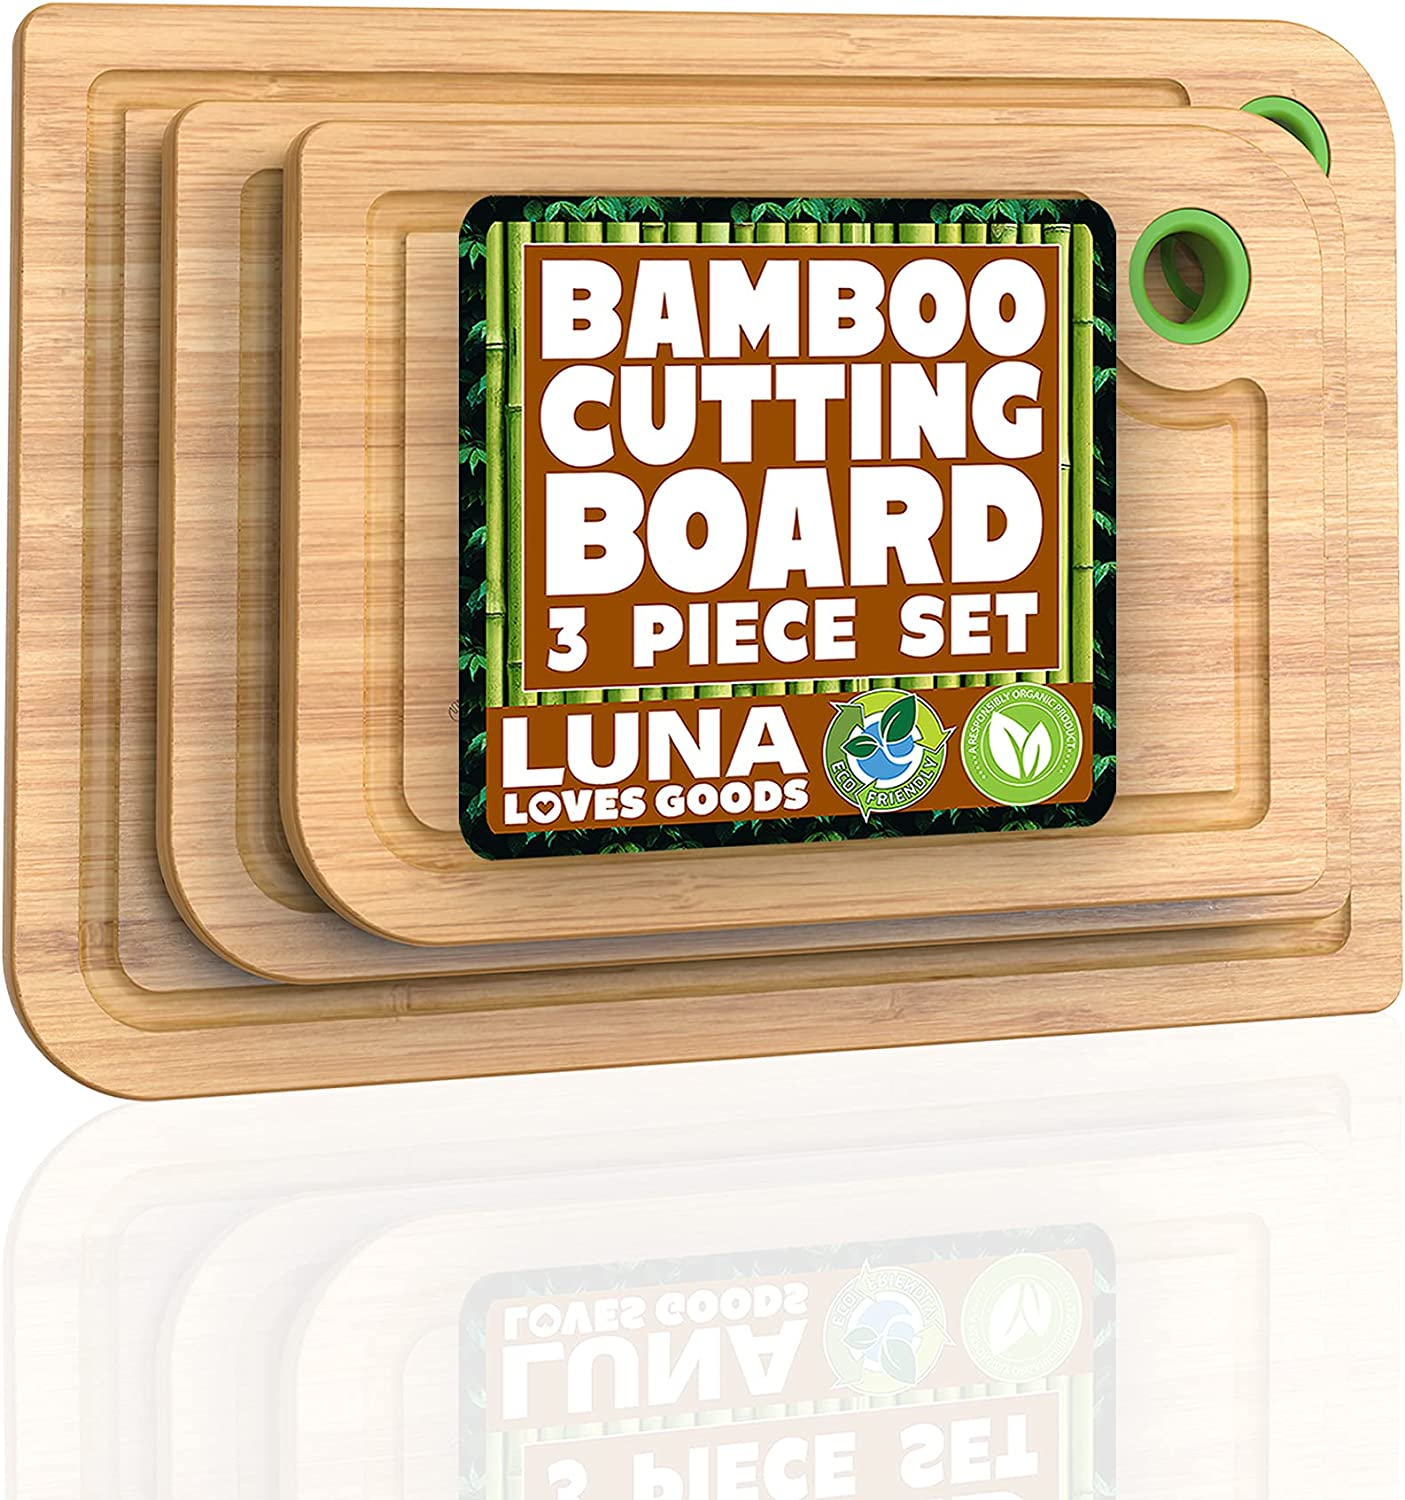 Bamboo Cutting Boards for Kitchen We OFFer at cheap prices - 3 Set wit 5 popular Board of